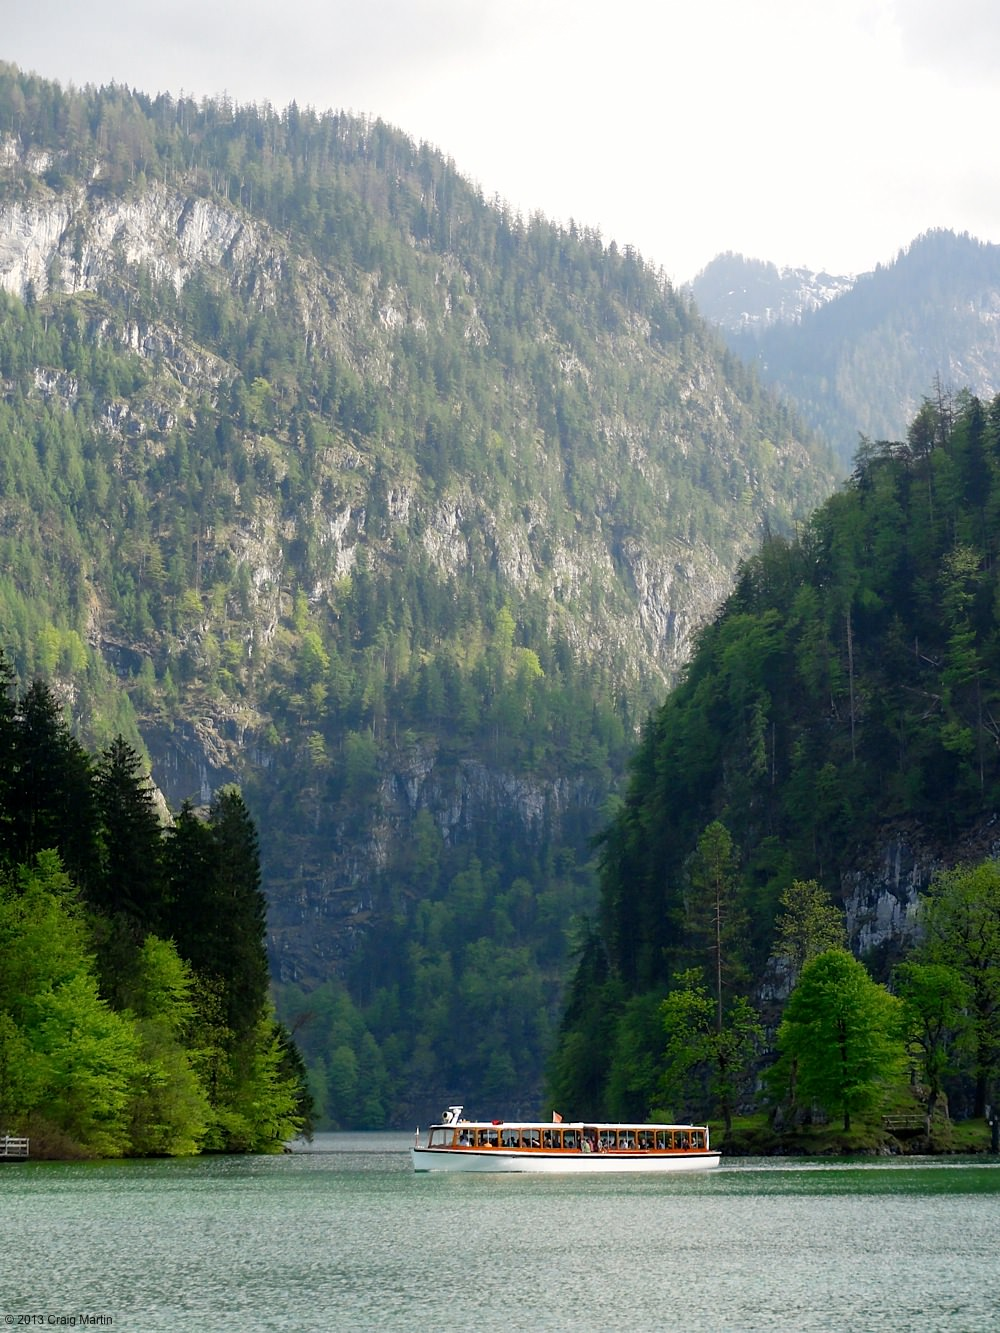 The Konigsee.